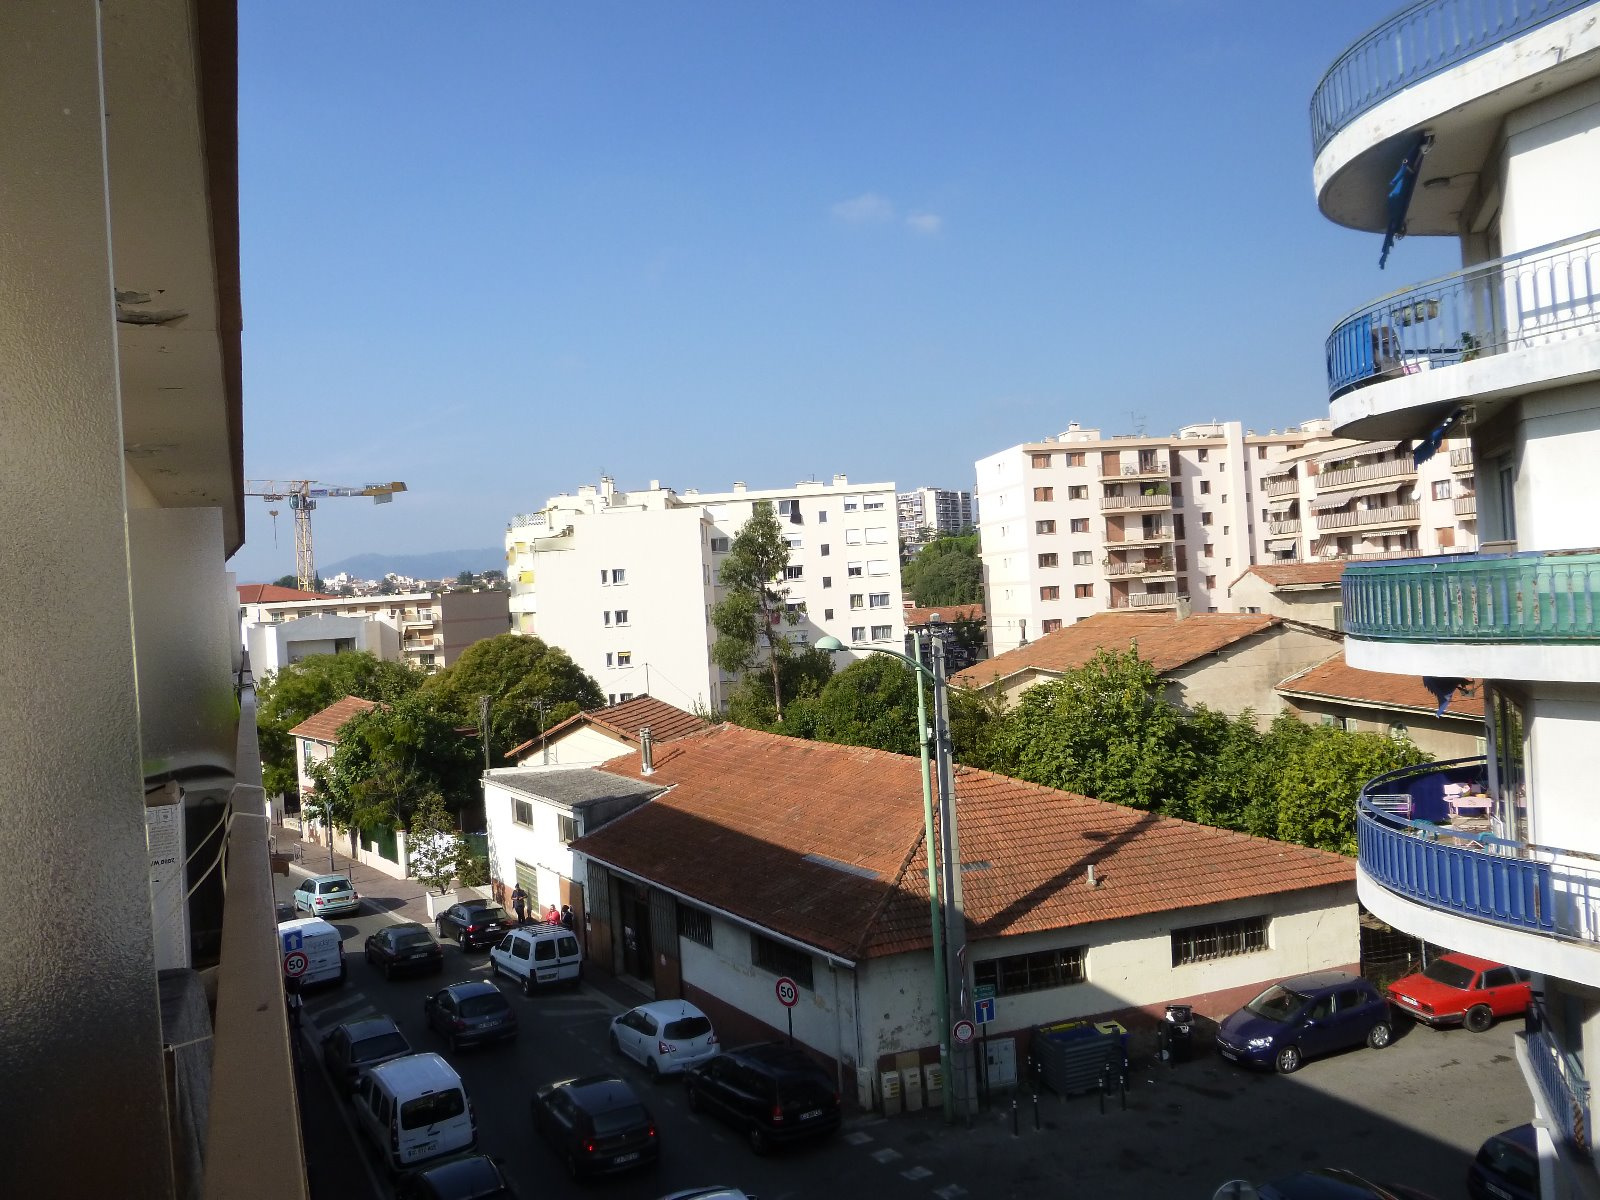 Damonte immobilier le cannet agence sp cialiste vente for Location achat immobilier